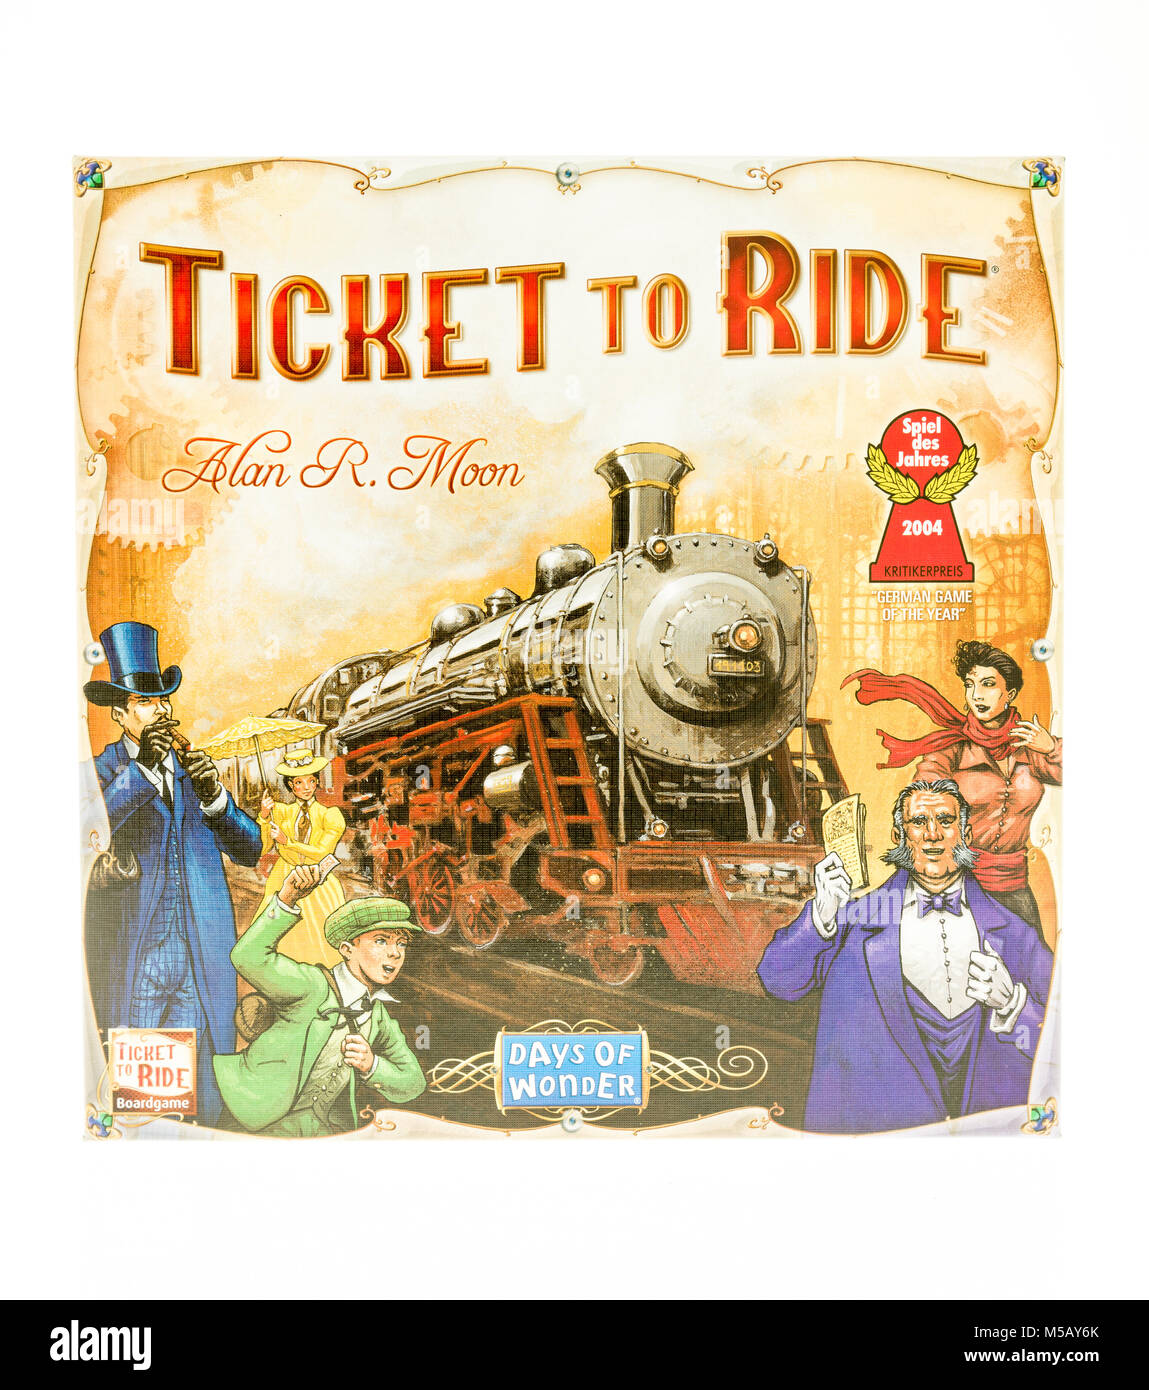 Winneconne, WI - 19 November 2017: A box of Ticket to ride board game on an isolated background. - Stock Image